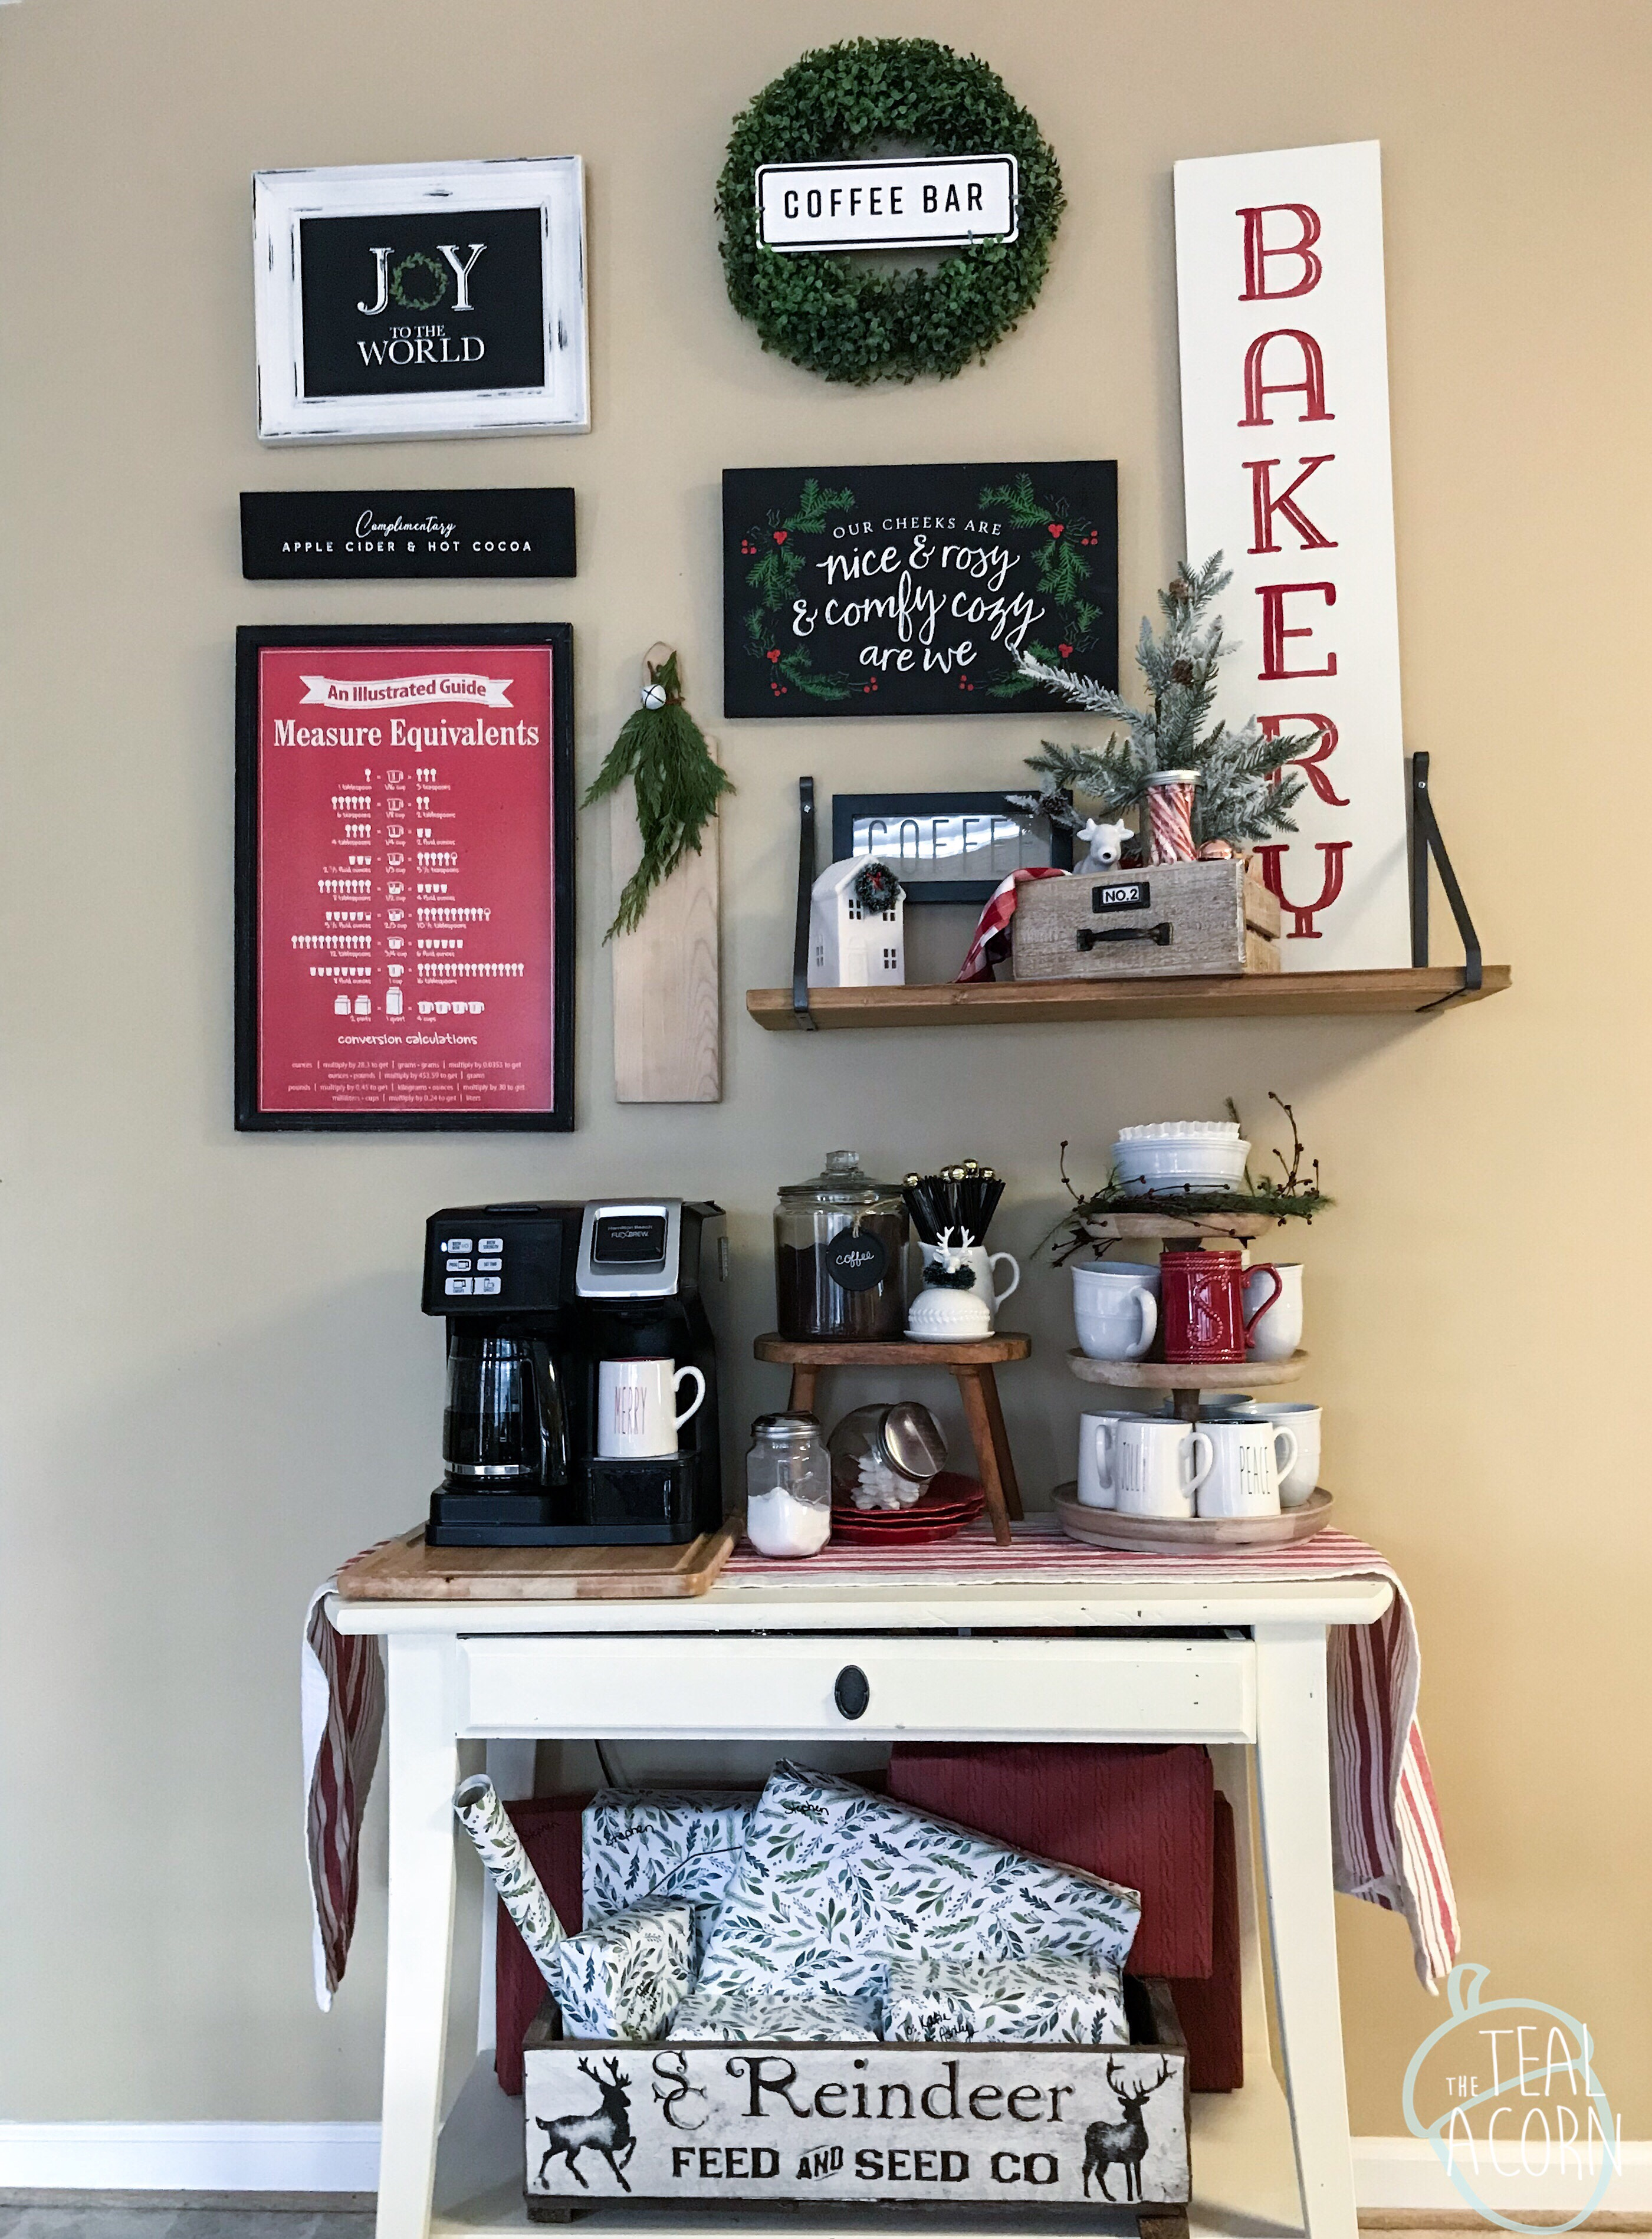 Christmas Gallery wall with Chalk Couture Joy to the world, bakery, vintage truck complimentary cocoa and cider, our cheeks are nice and rosy and comfy cozy are we transfers.  Gallery wall is set above a coffee station. Walls are Sherwin Williams Safari.